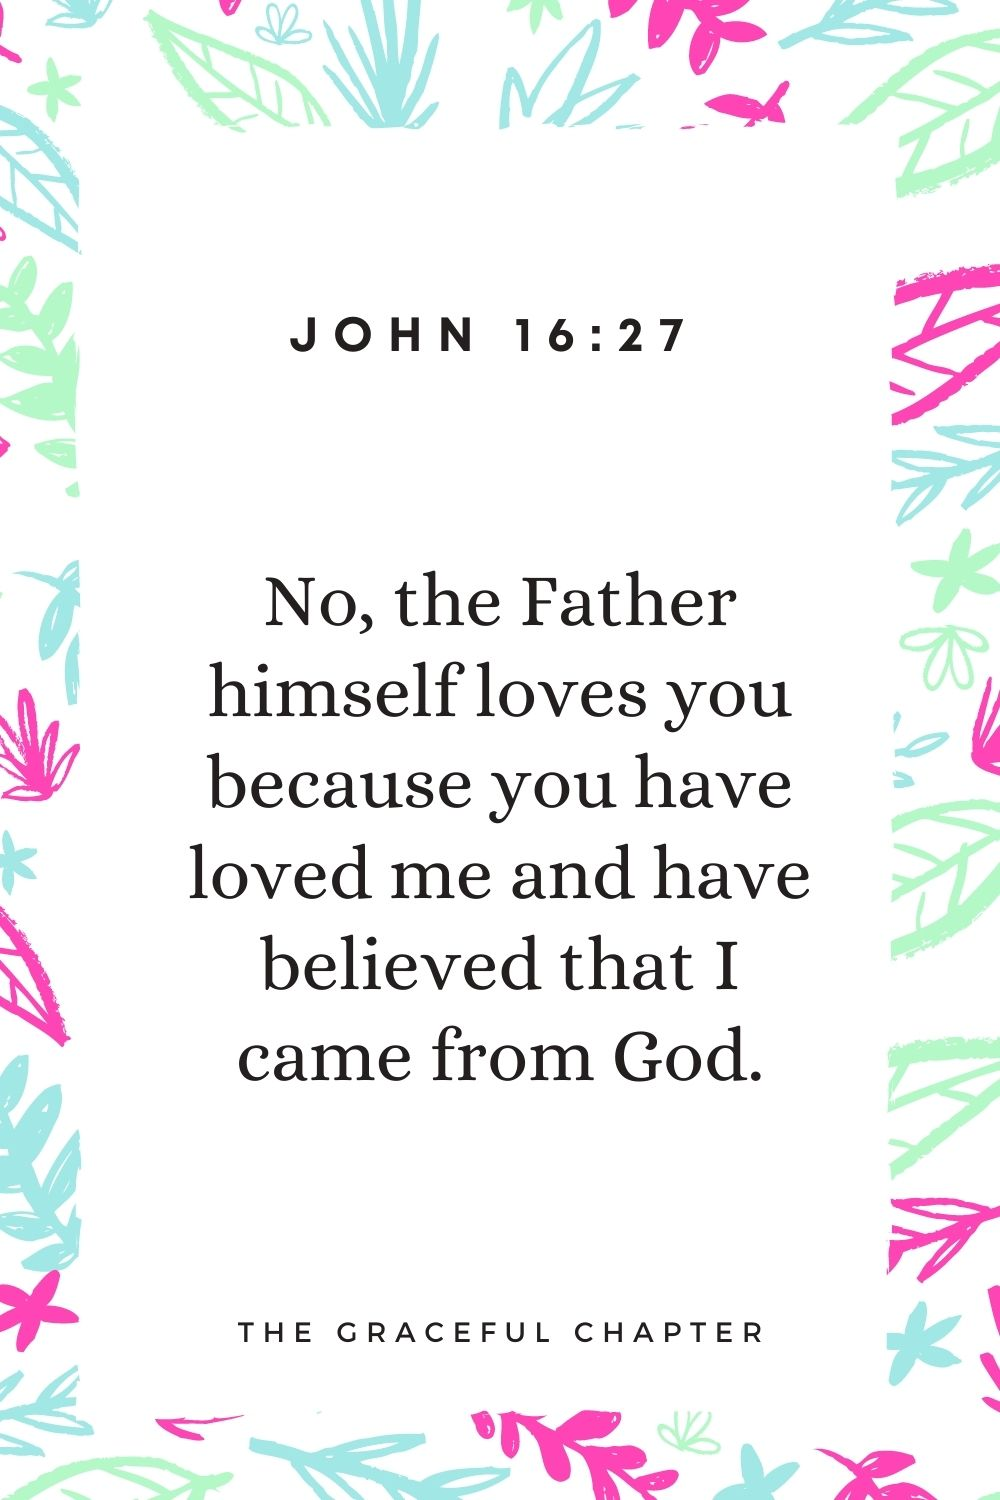 No, the Father himself loves you because you have loved me and have believed that I came from God. John 16:27